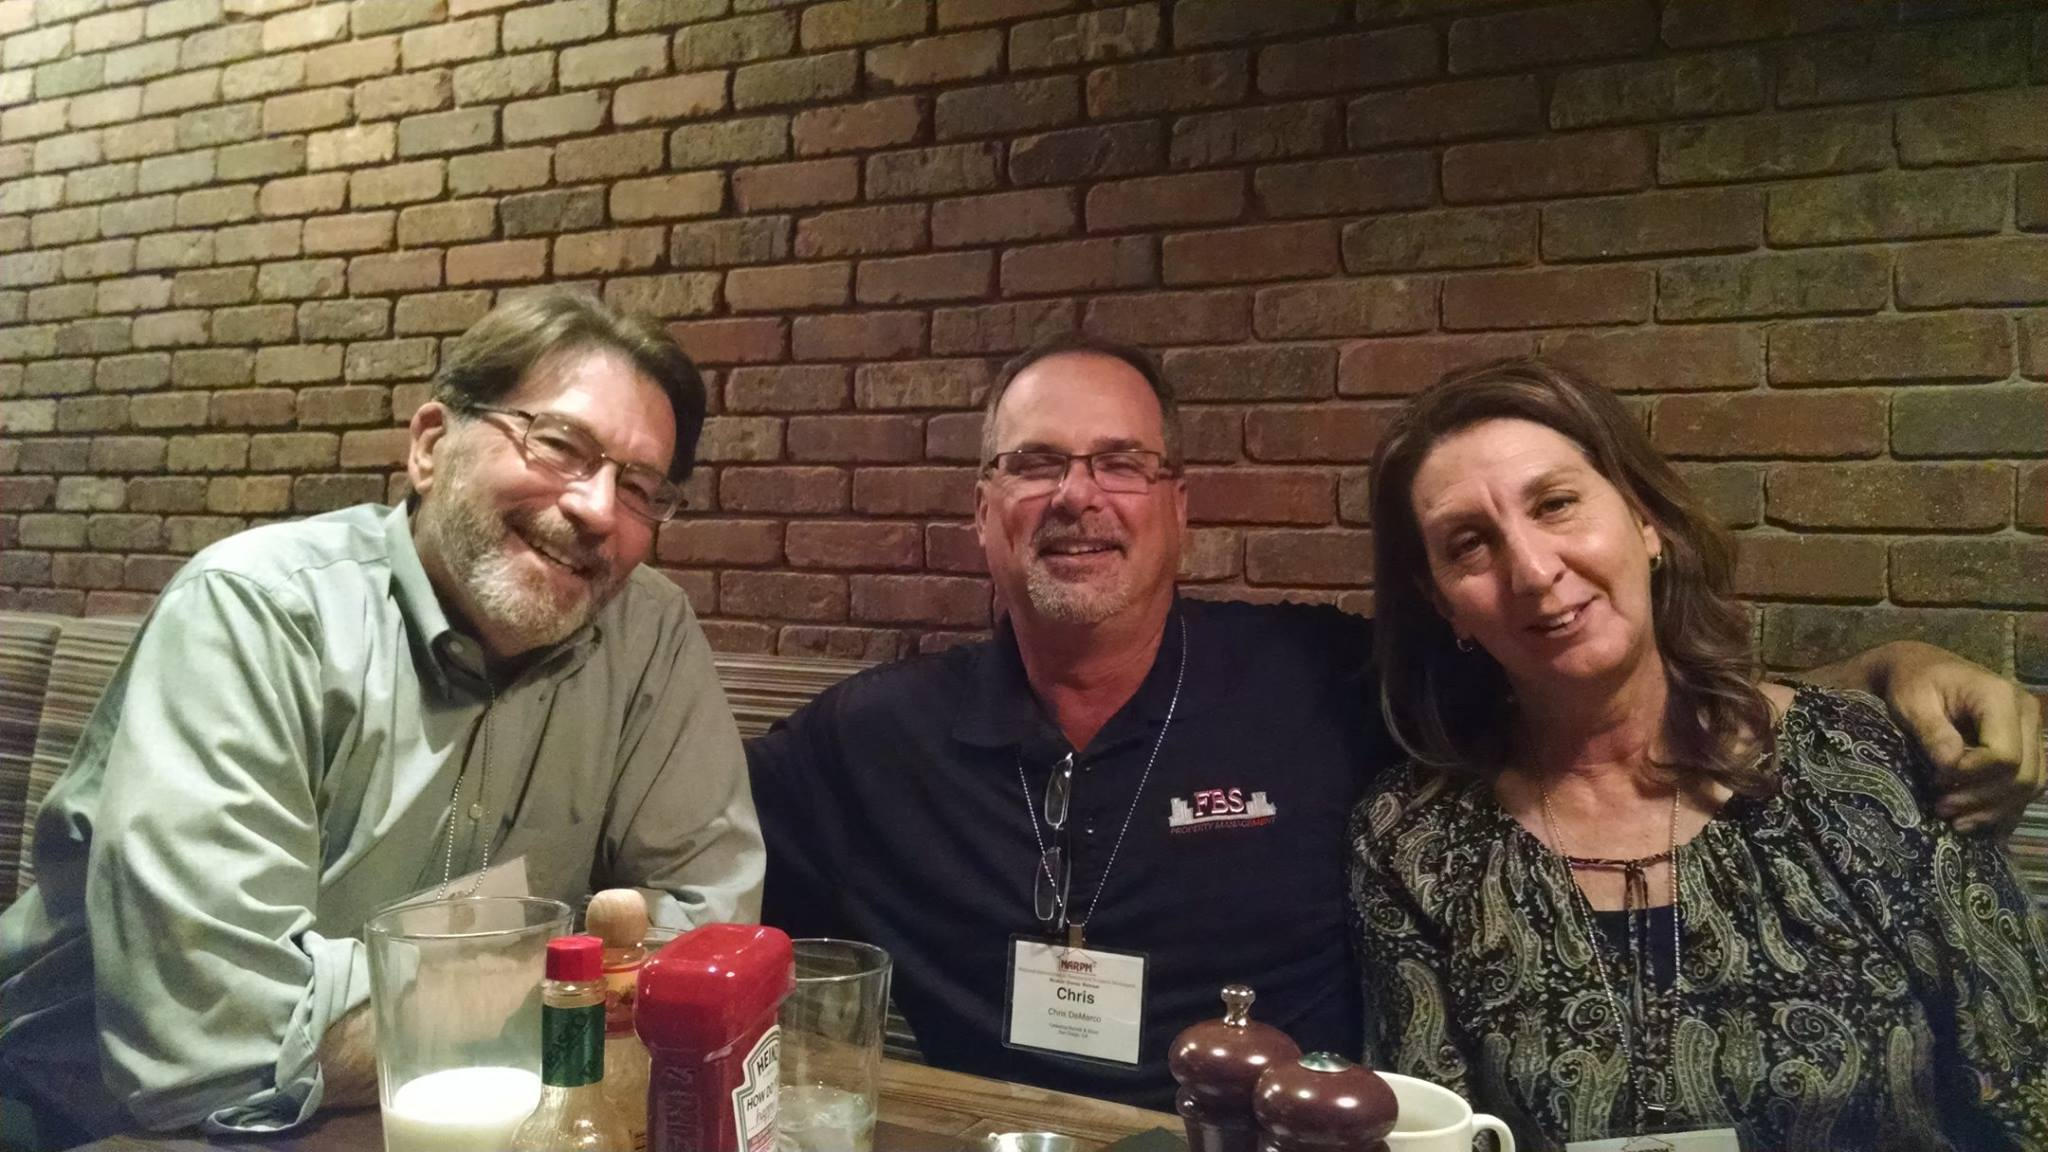 Cheers to 25 years- Pam Neillo Retires from FBS